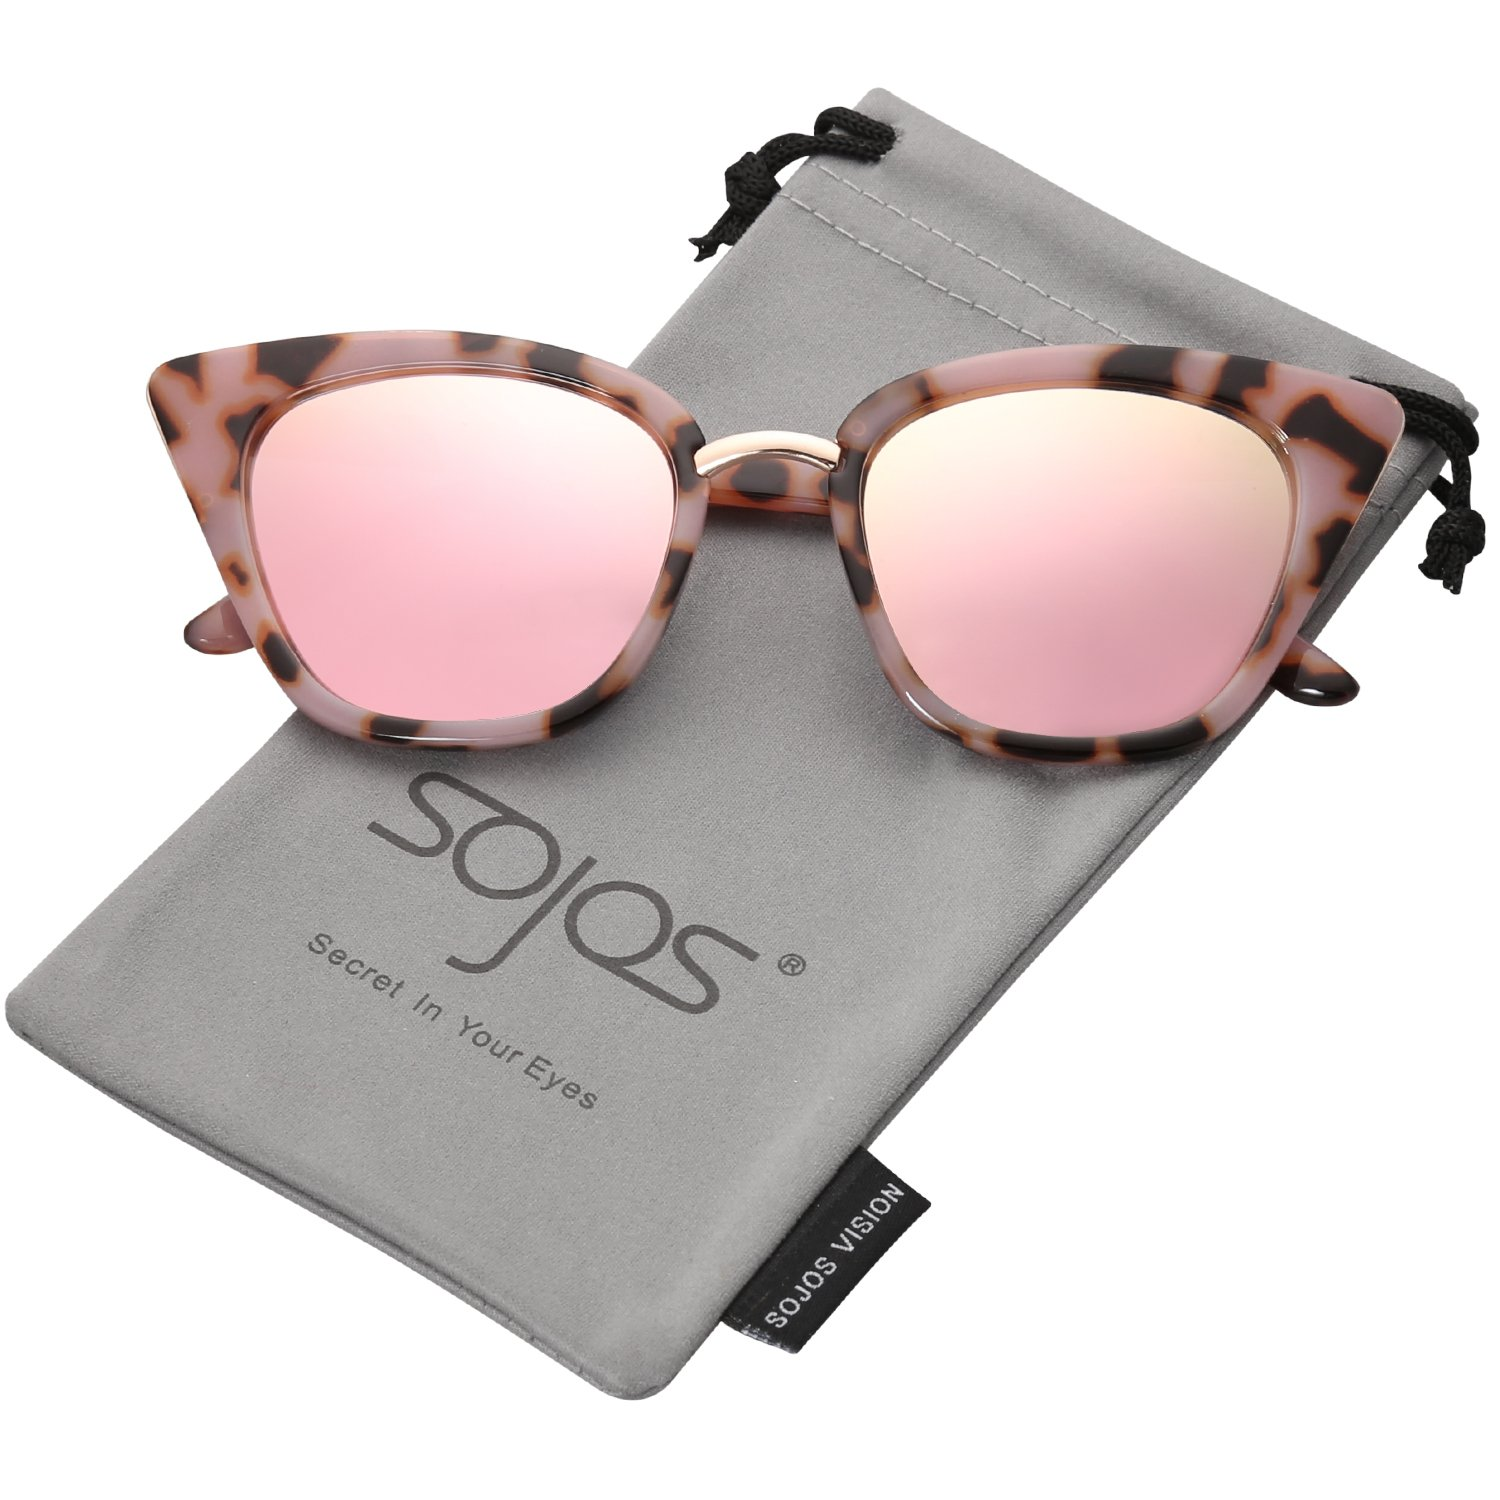 SojoS Cat Eye Brand Designer Sunglasses Fashion UV400 Protection Glasses SJ2052 with Pink Tortoise Frame/Pink Mirrored Lens